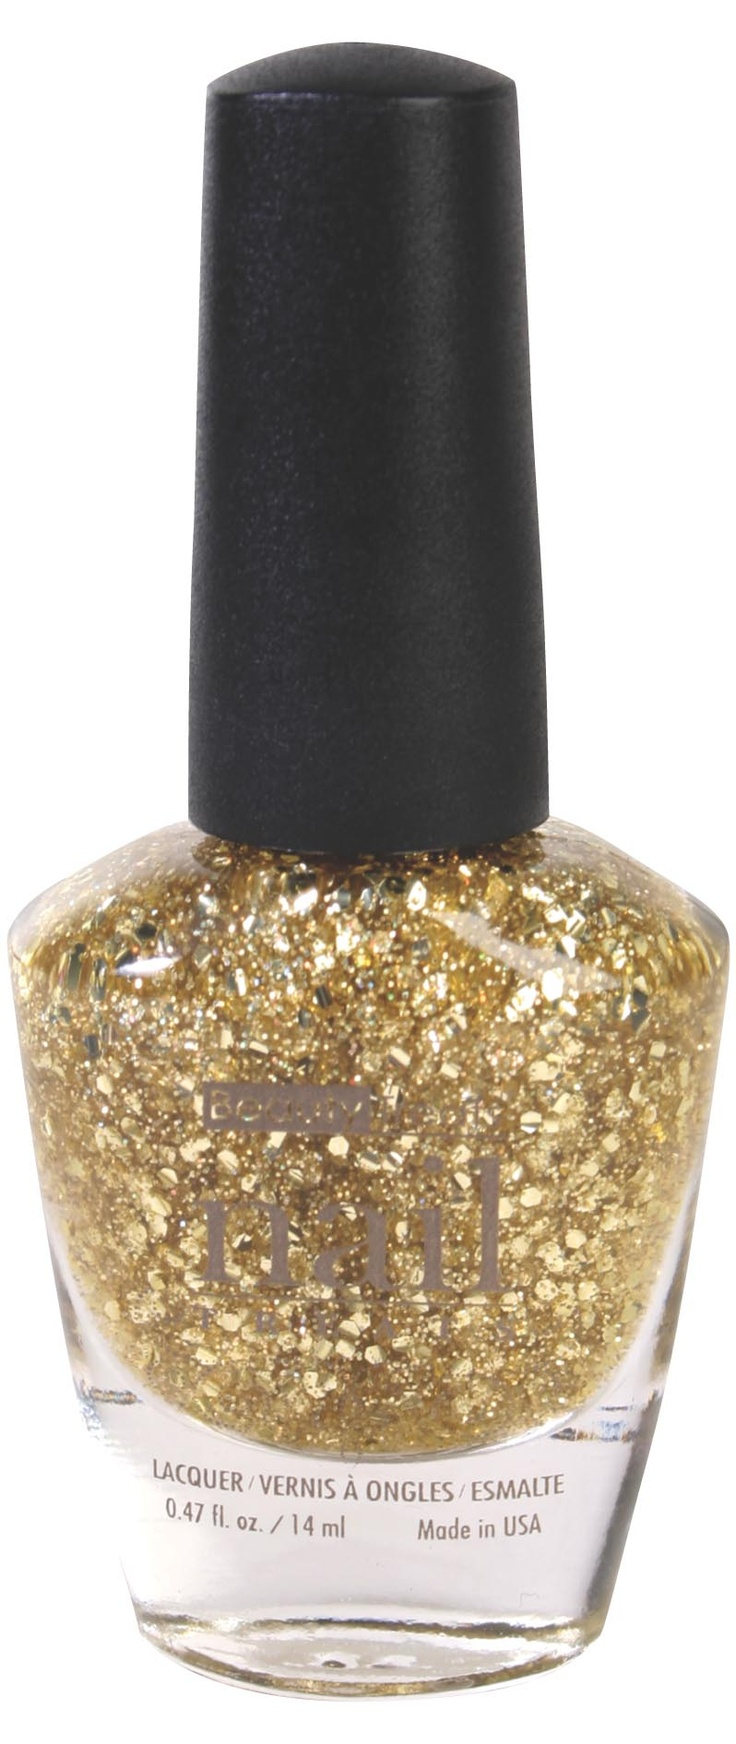 GOLD SPARKLES - 2nd Love Cosmetics & Beauty TreatsFabulous Price, 4Th Free, Hair Nails Make Up, Beautiful Treats, Glitter Nails Polish, Glitter Nail Polish, Sparkle, Amazing Makeup, Feelings Free